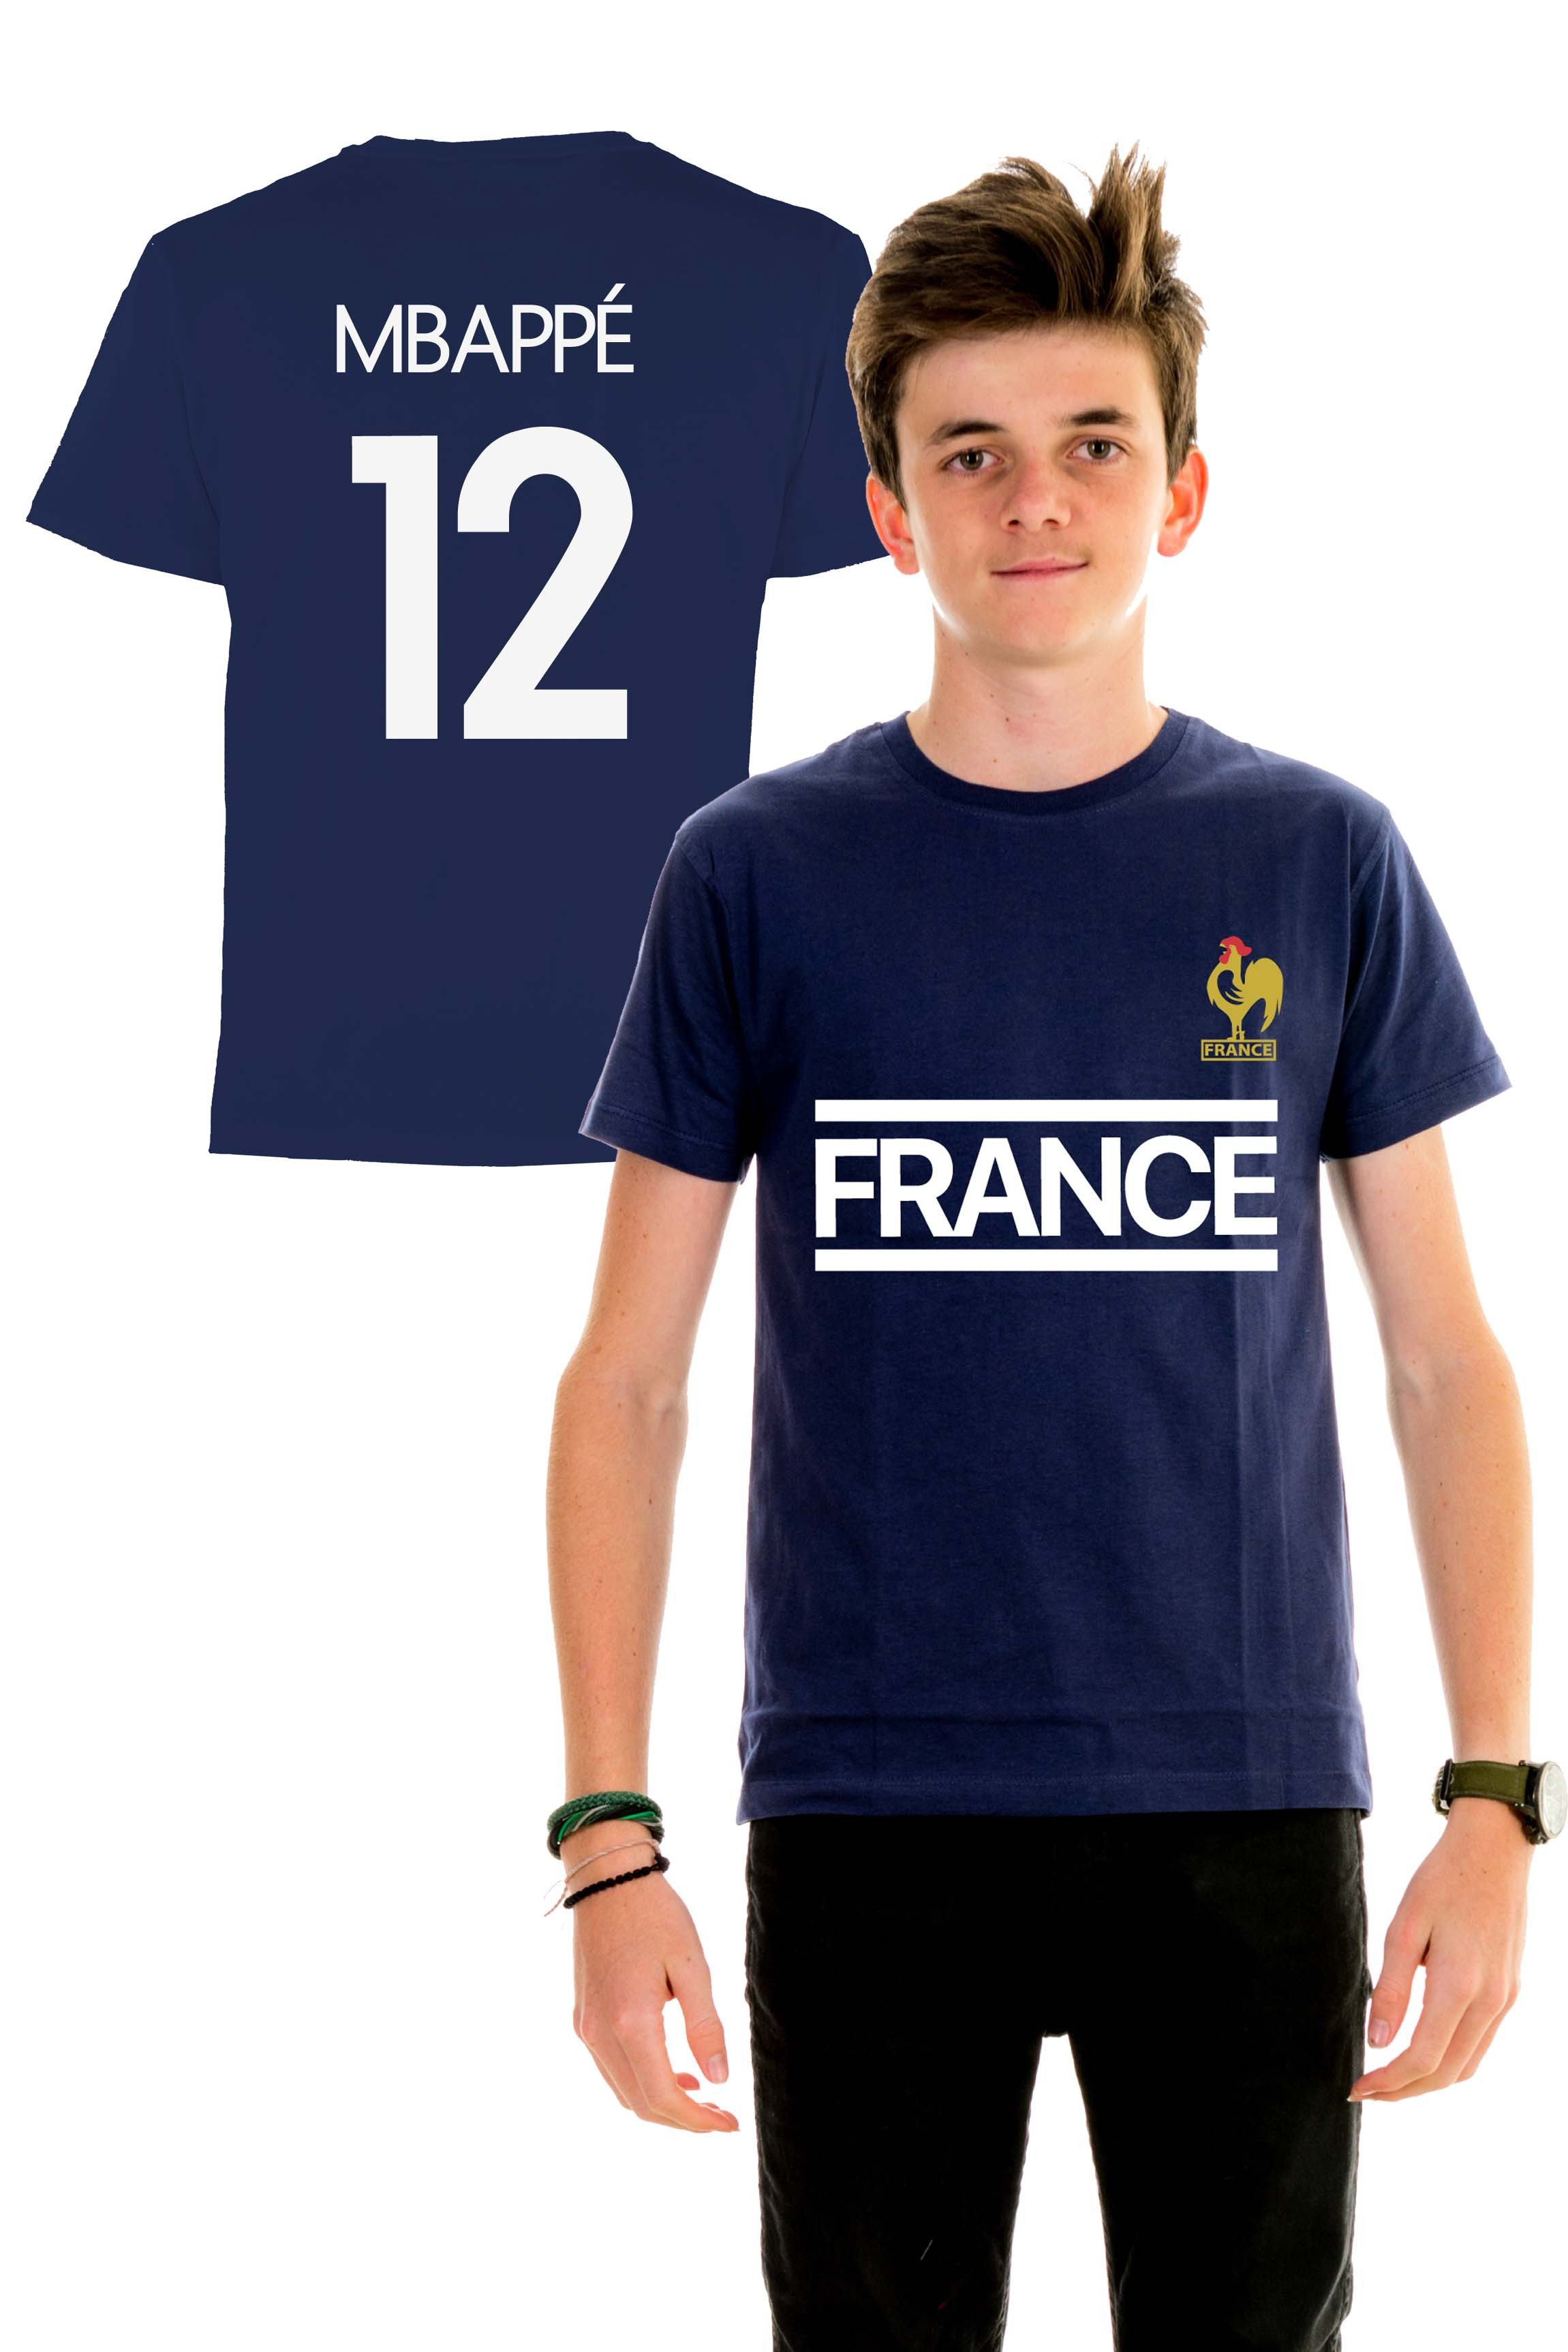 buy popular cb7a6 80cf8 T-shirt World Cup 2018 - France, Mbappé 12